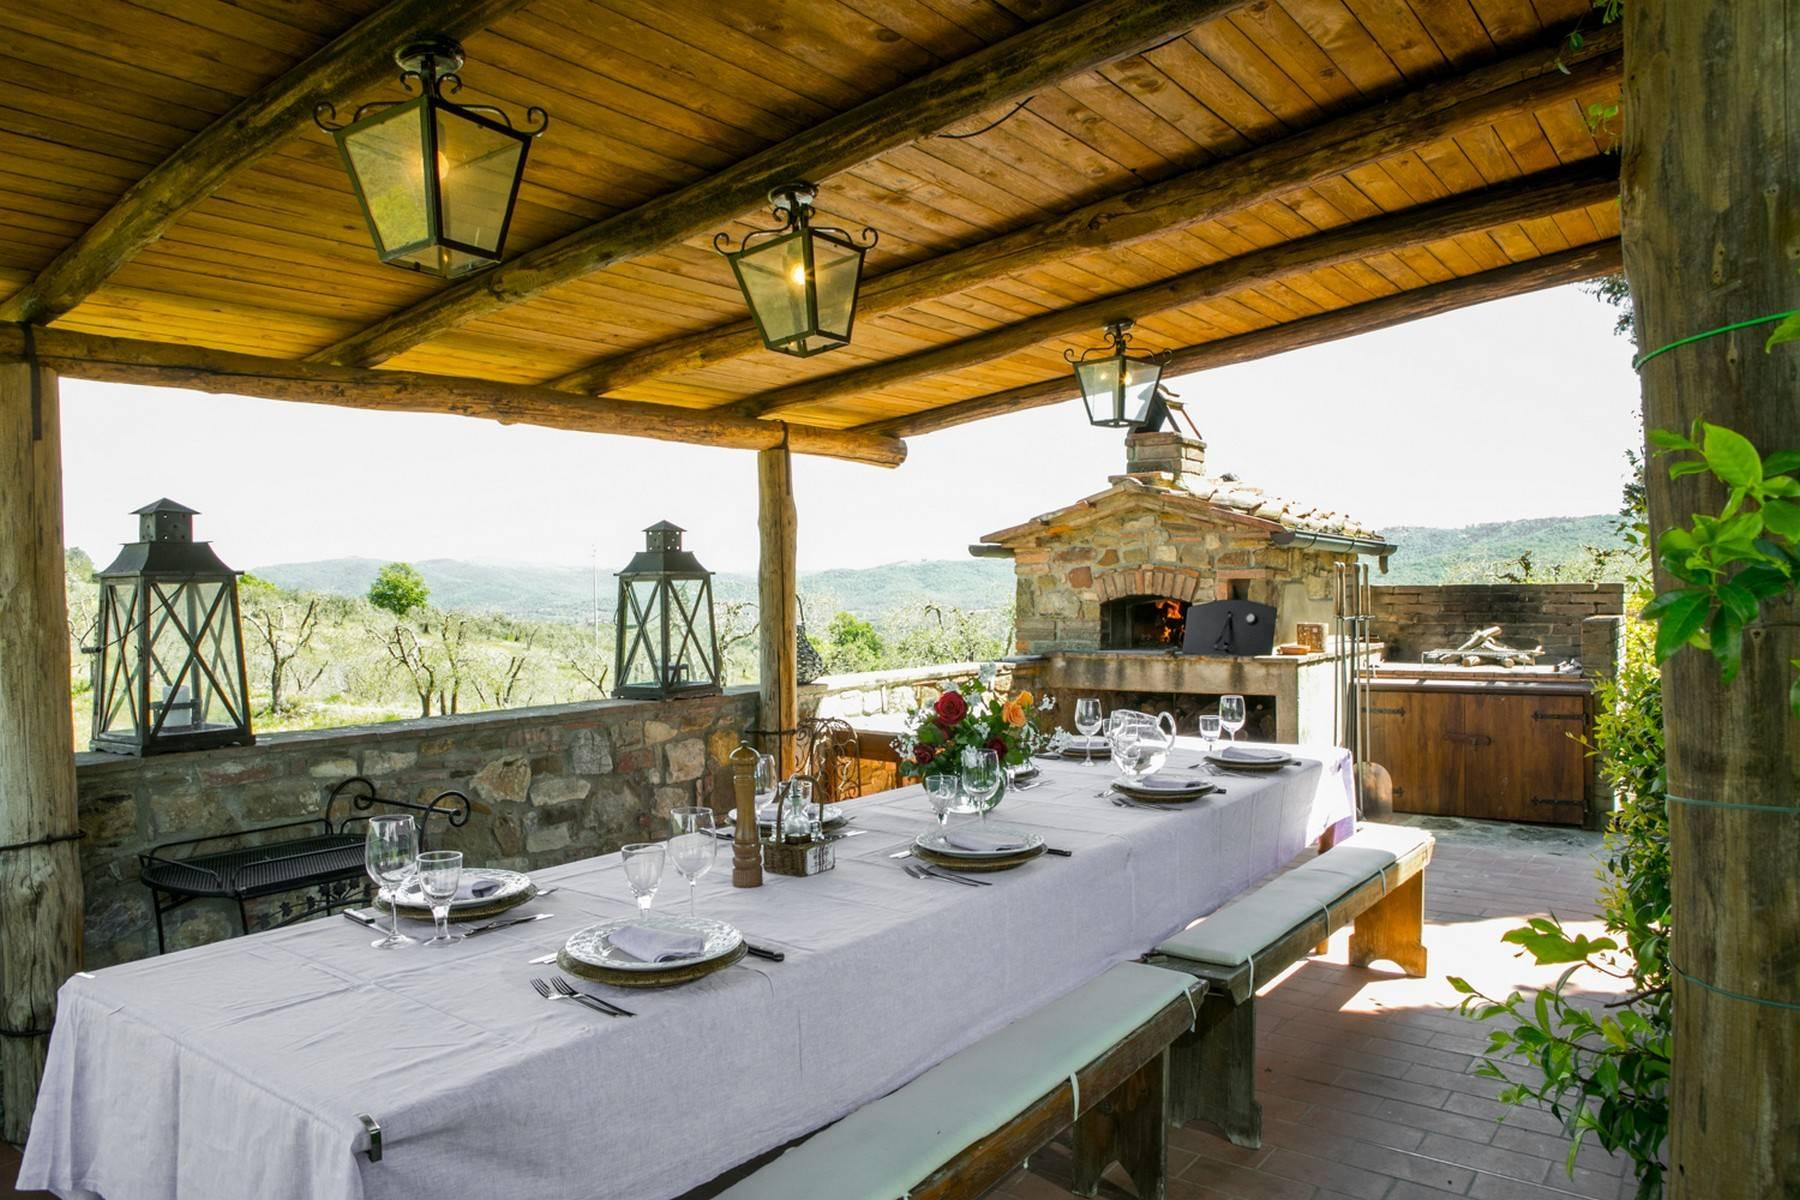 Rustic House in the Tuscan Hills for Sale - 8